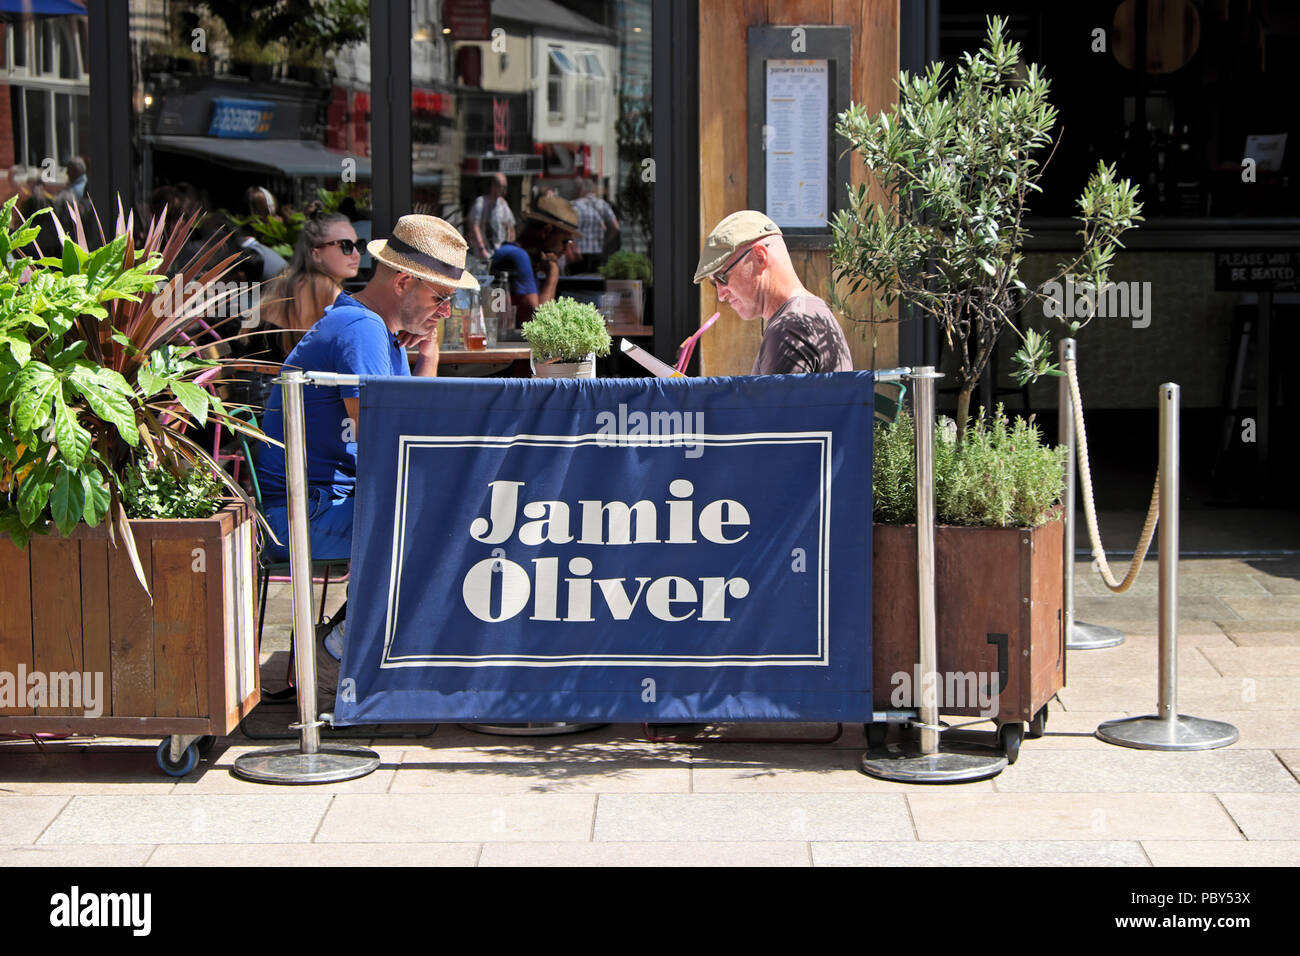 Jamie Oliver restaurant exterior with people sitting eating outside at tables in Cardiff City Centre Wales UK  KATHY DEWITT - Stock Image